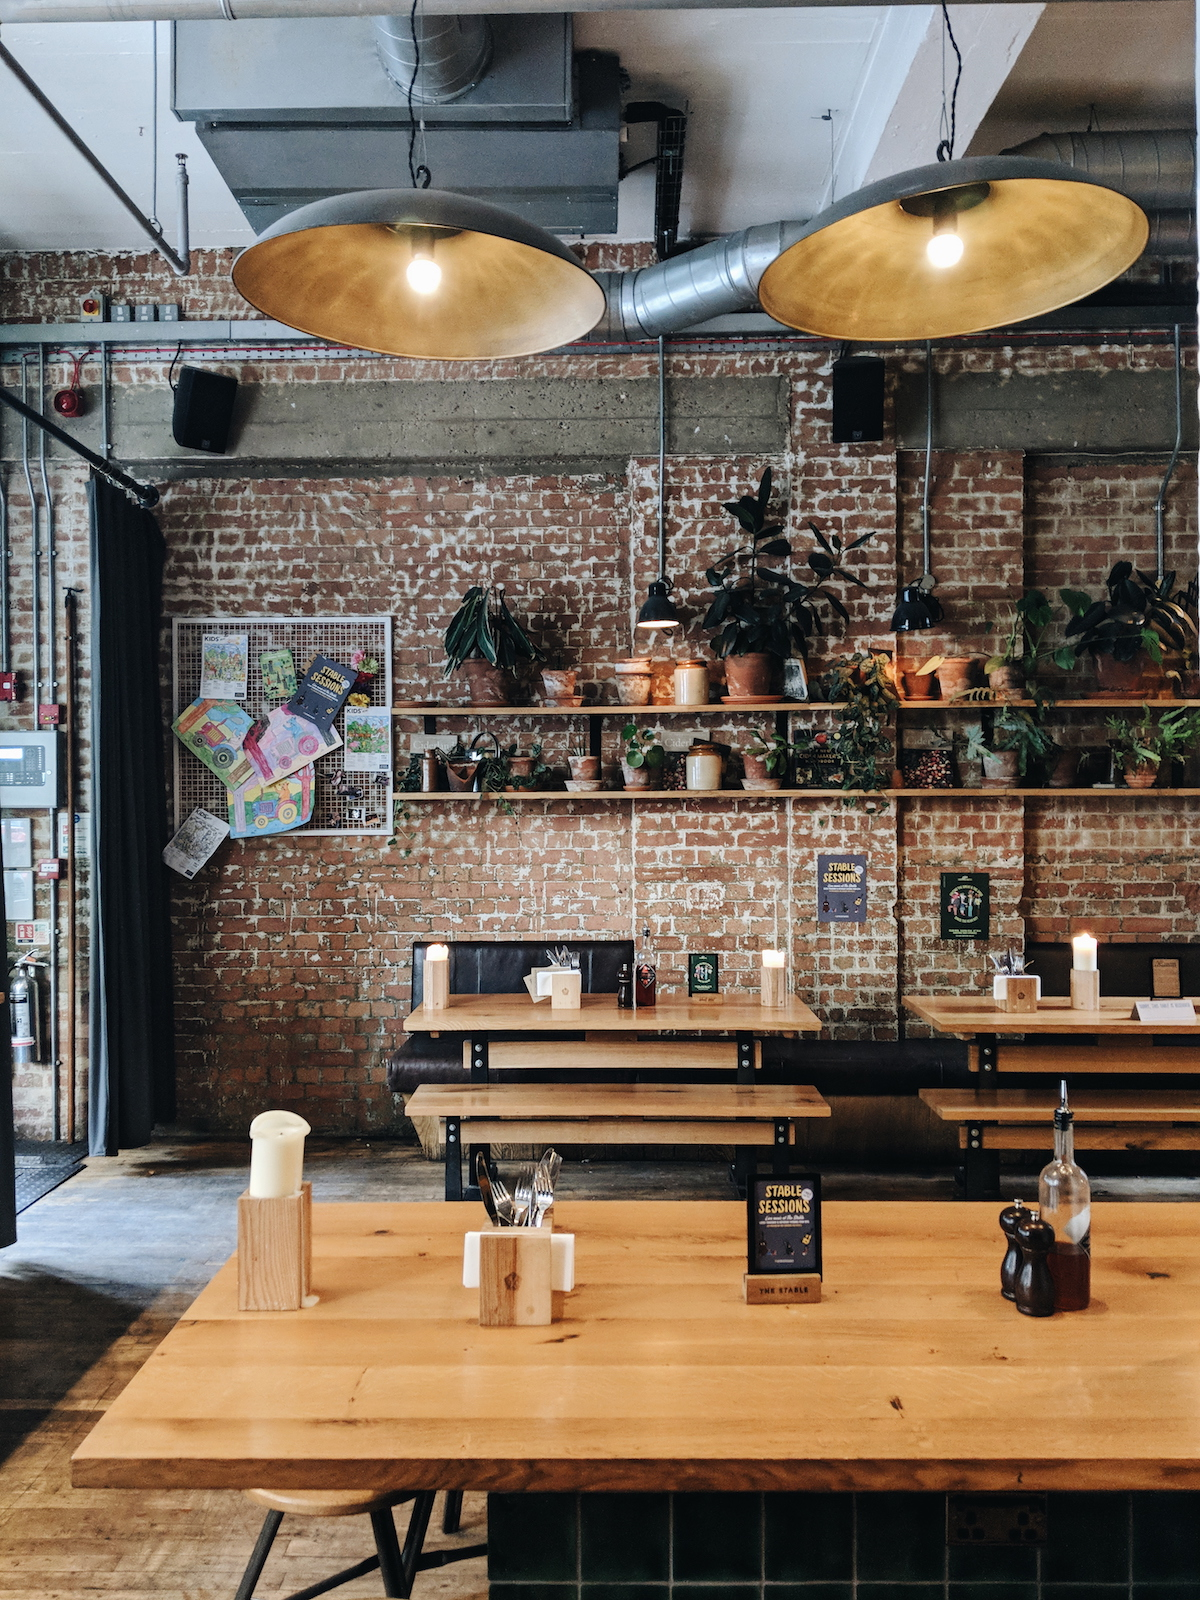 The rustic yet modern decor of The Stable in Whitechapel